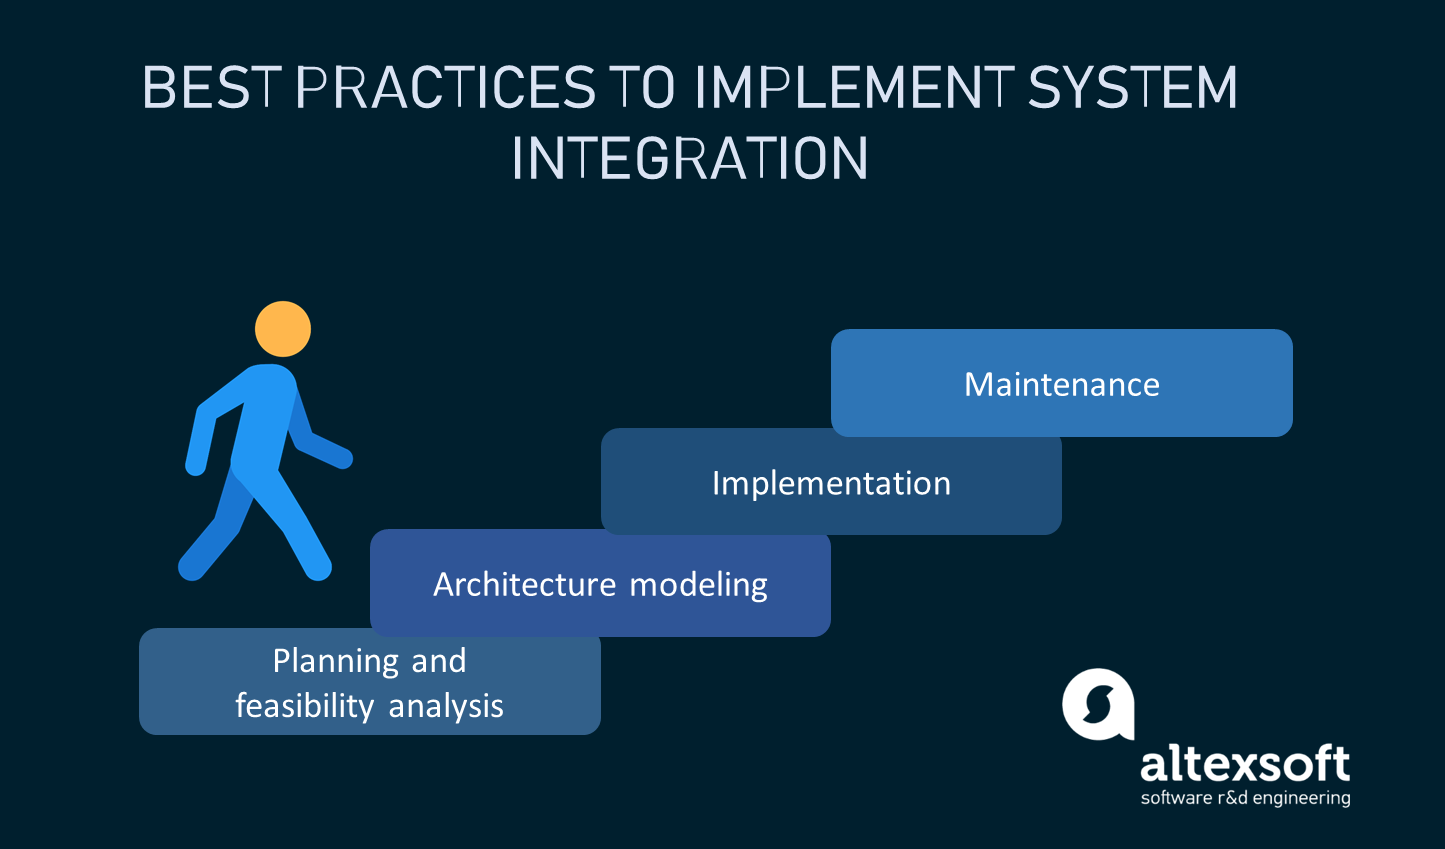 Steps to take to implement system integration